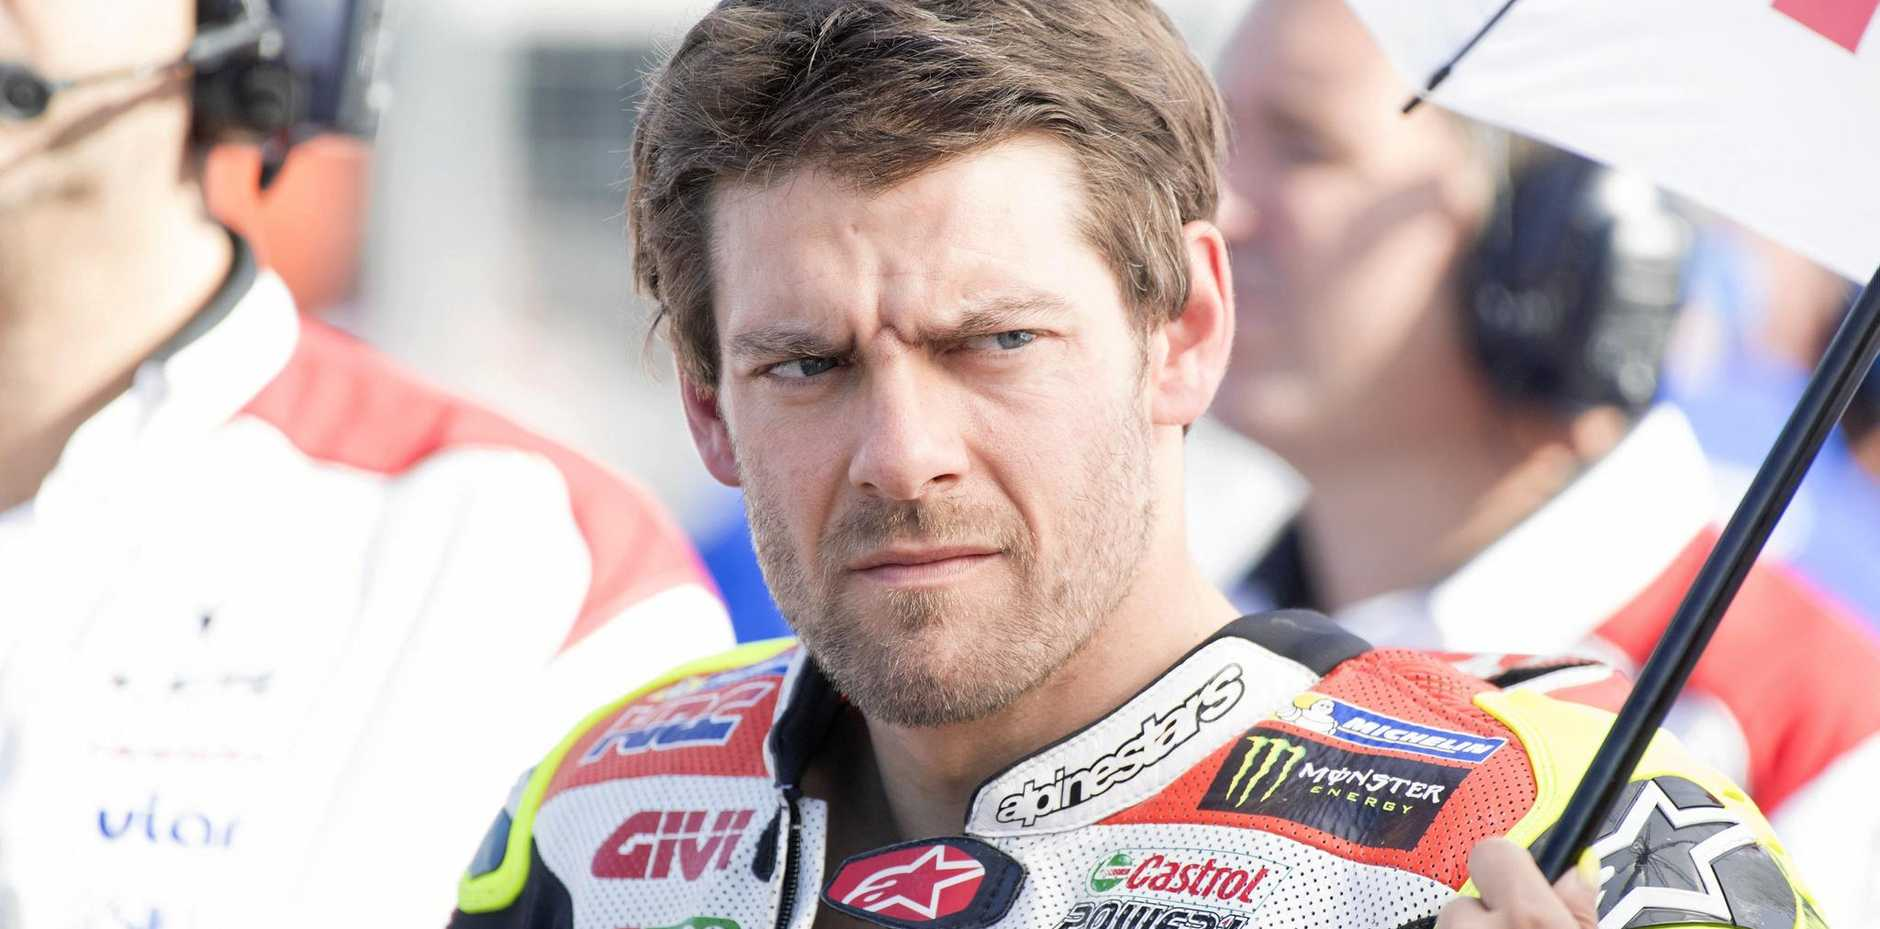 Cal Crutchlow of Great Britain had the fastest time in practice for the Australian MotoGP.